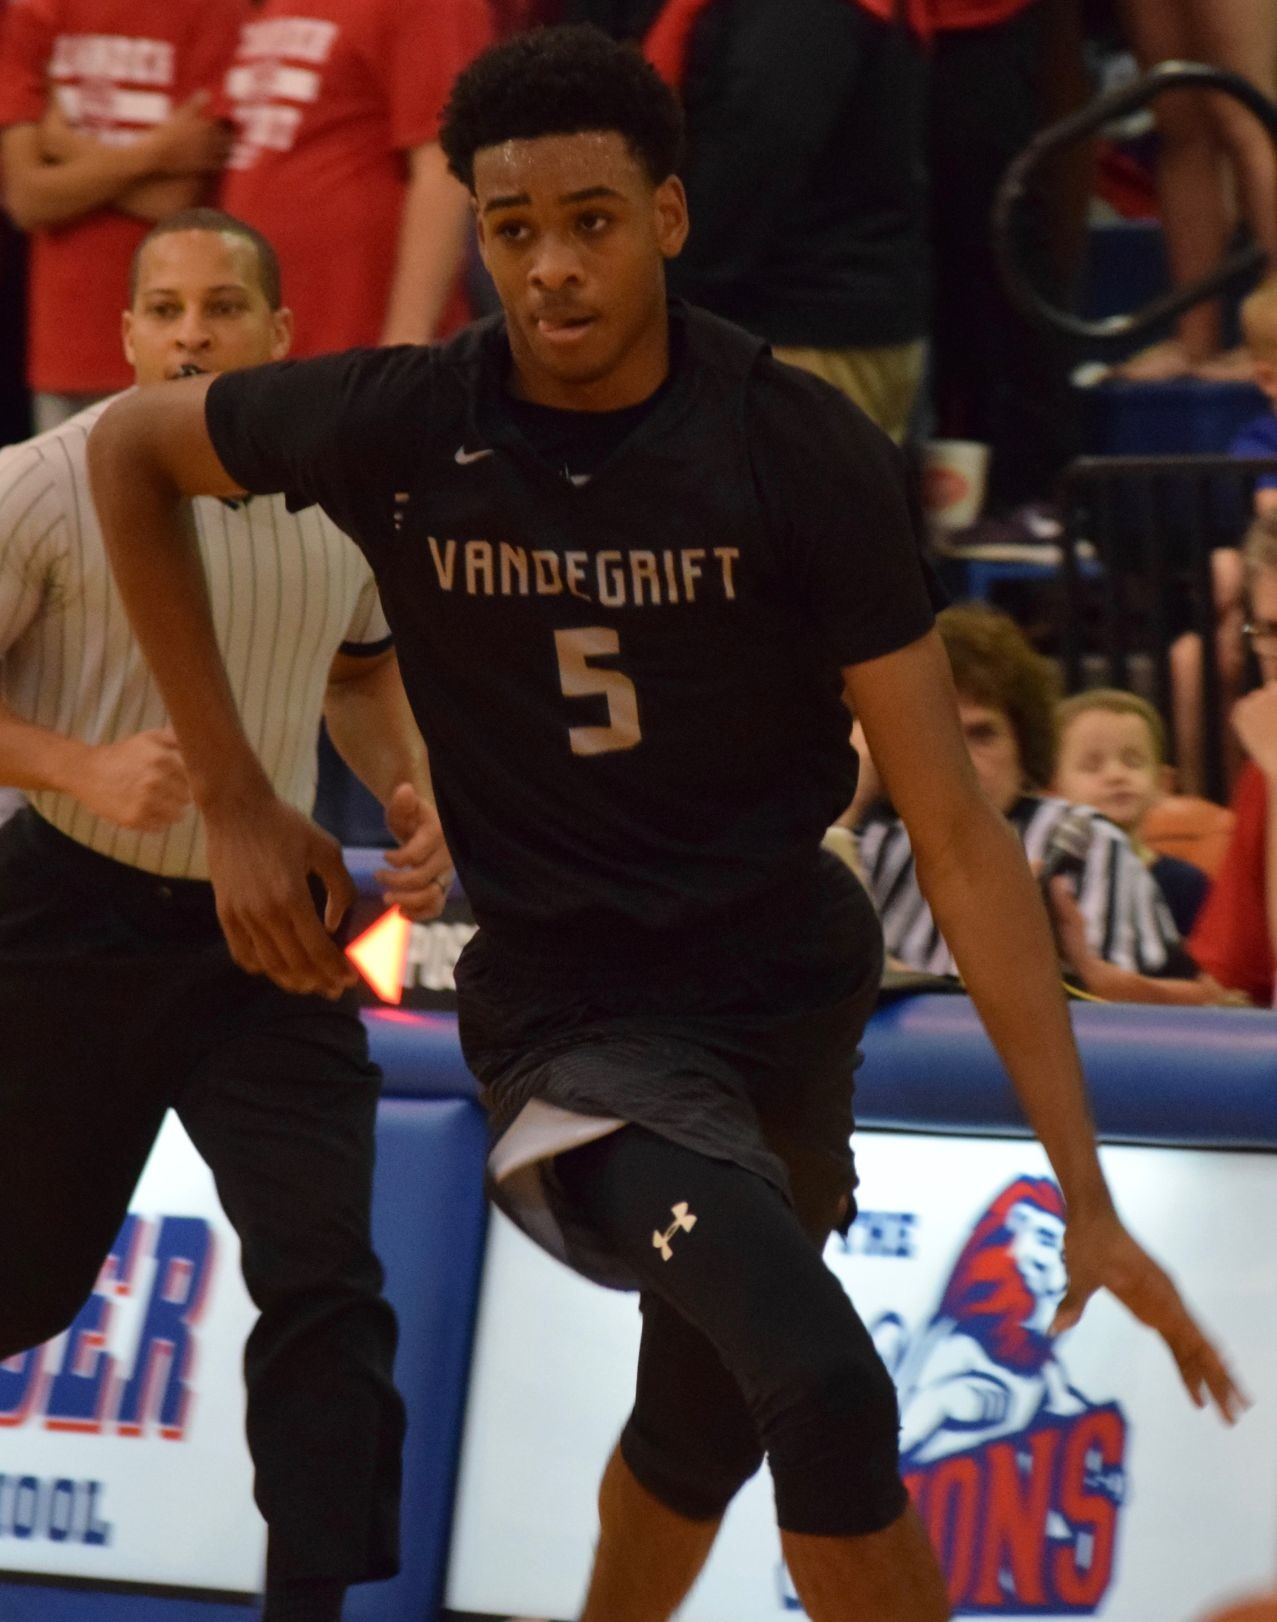 Greg Brown III scored 19 points and Vandegrift kept its playoff hopes alive with a 41-37 win at Leander on Tuesday night.